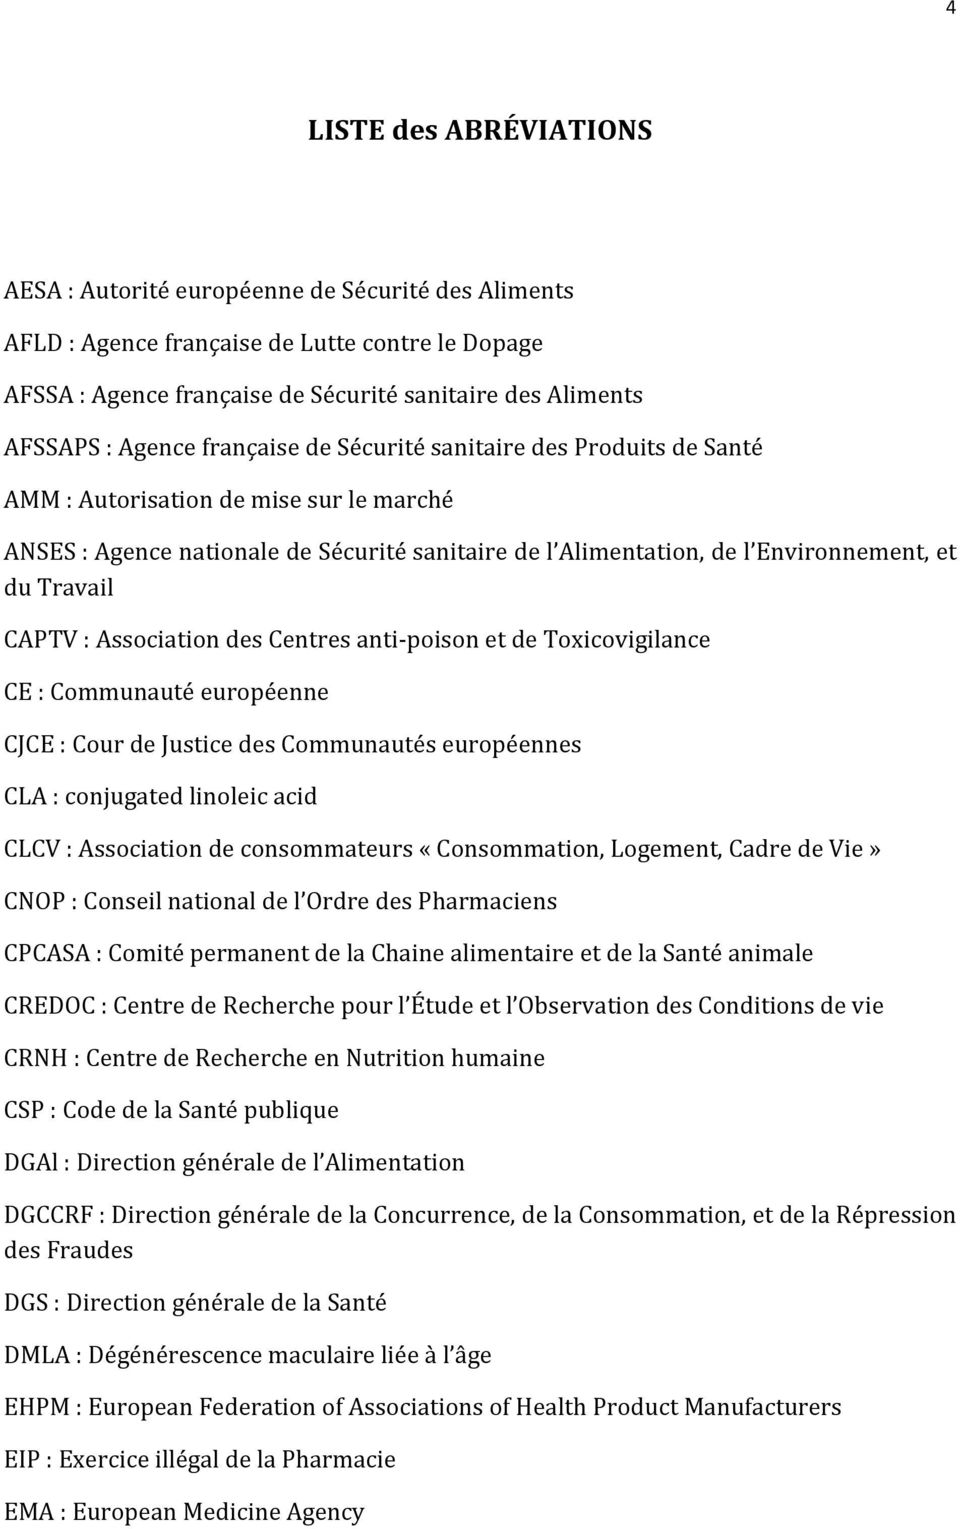 CAPTV:AssociationdesCentresanti poisonetdetoxicovigilance CE:Communautéeuropéenne CJCE:CourdeJusticedesCommunautéseuropéennes CLA:conjugatedlinoleicacid